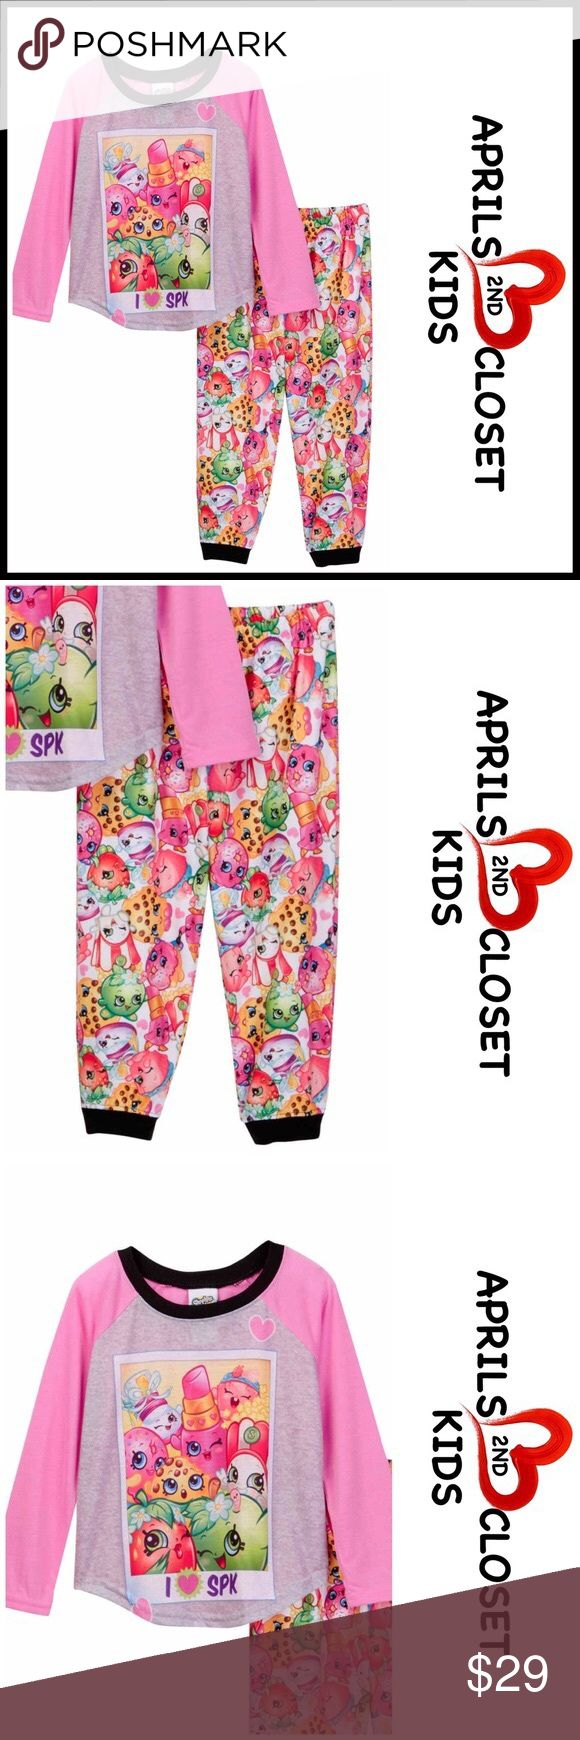 SHOPKINS PJS Pajama Set 💟NEW WITH TAGS💟  SHOPKINS Pajama Set  * Super soft & comfy  * 2 piece set  * Ribbed trim  * Long sleeve top  * Front graphic print   * Elastic waist pants & jogger cuff   Material: 100% cotton Color: Heart pink  Item# Search words #   🚫No Trades🚫 ✅ Offers Considered*✅ *Please use the blue 'offer' button to submit an offer. Shopkins Pajamas Pajama Sets